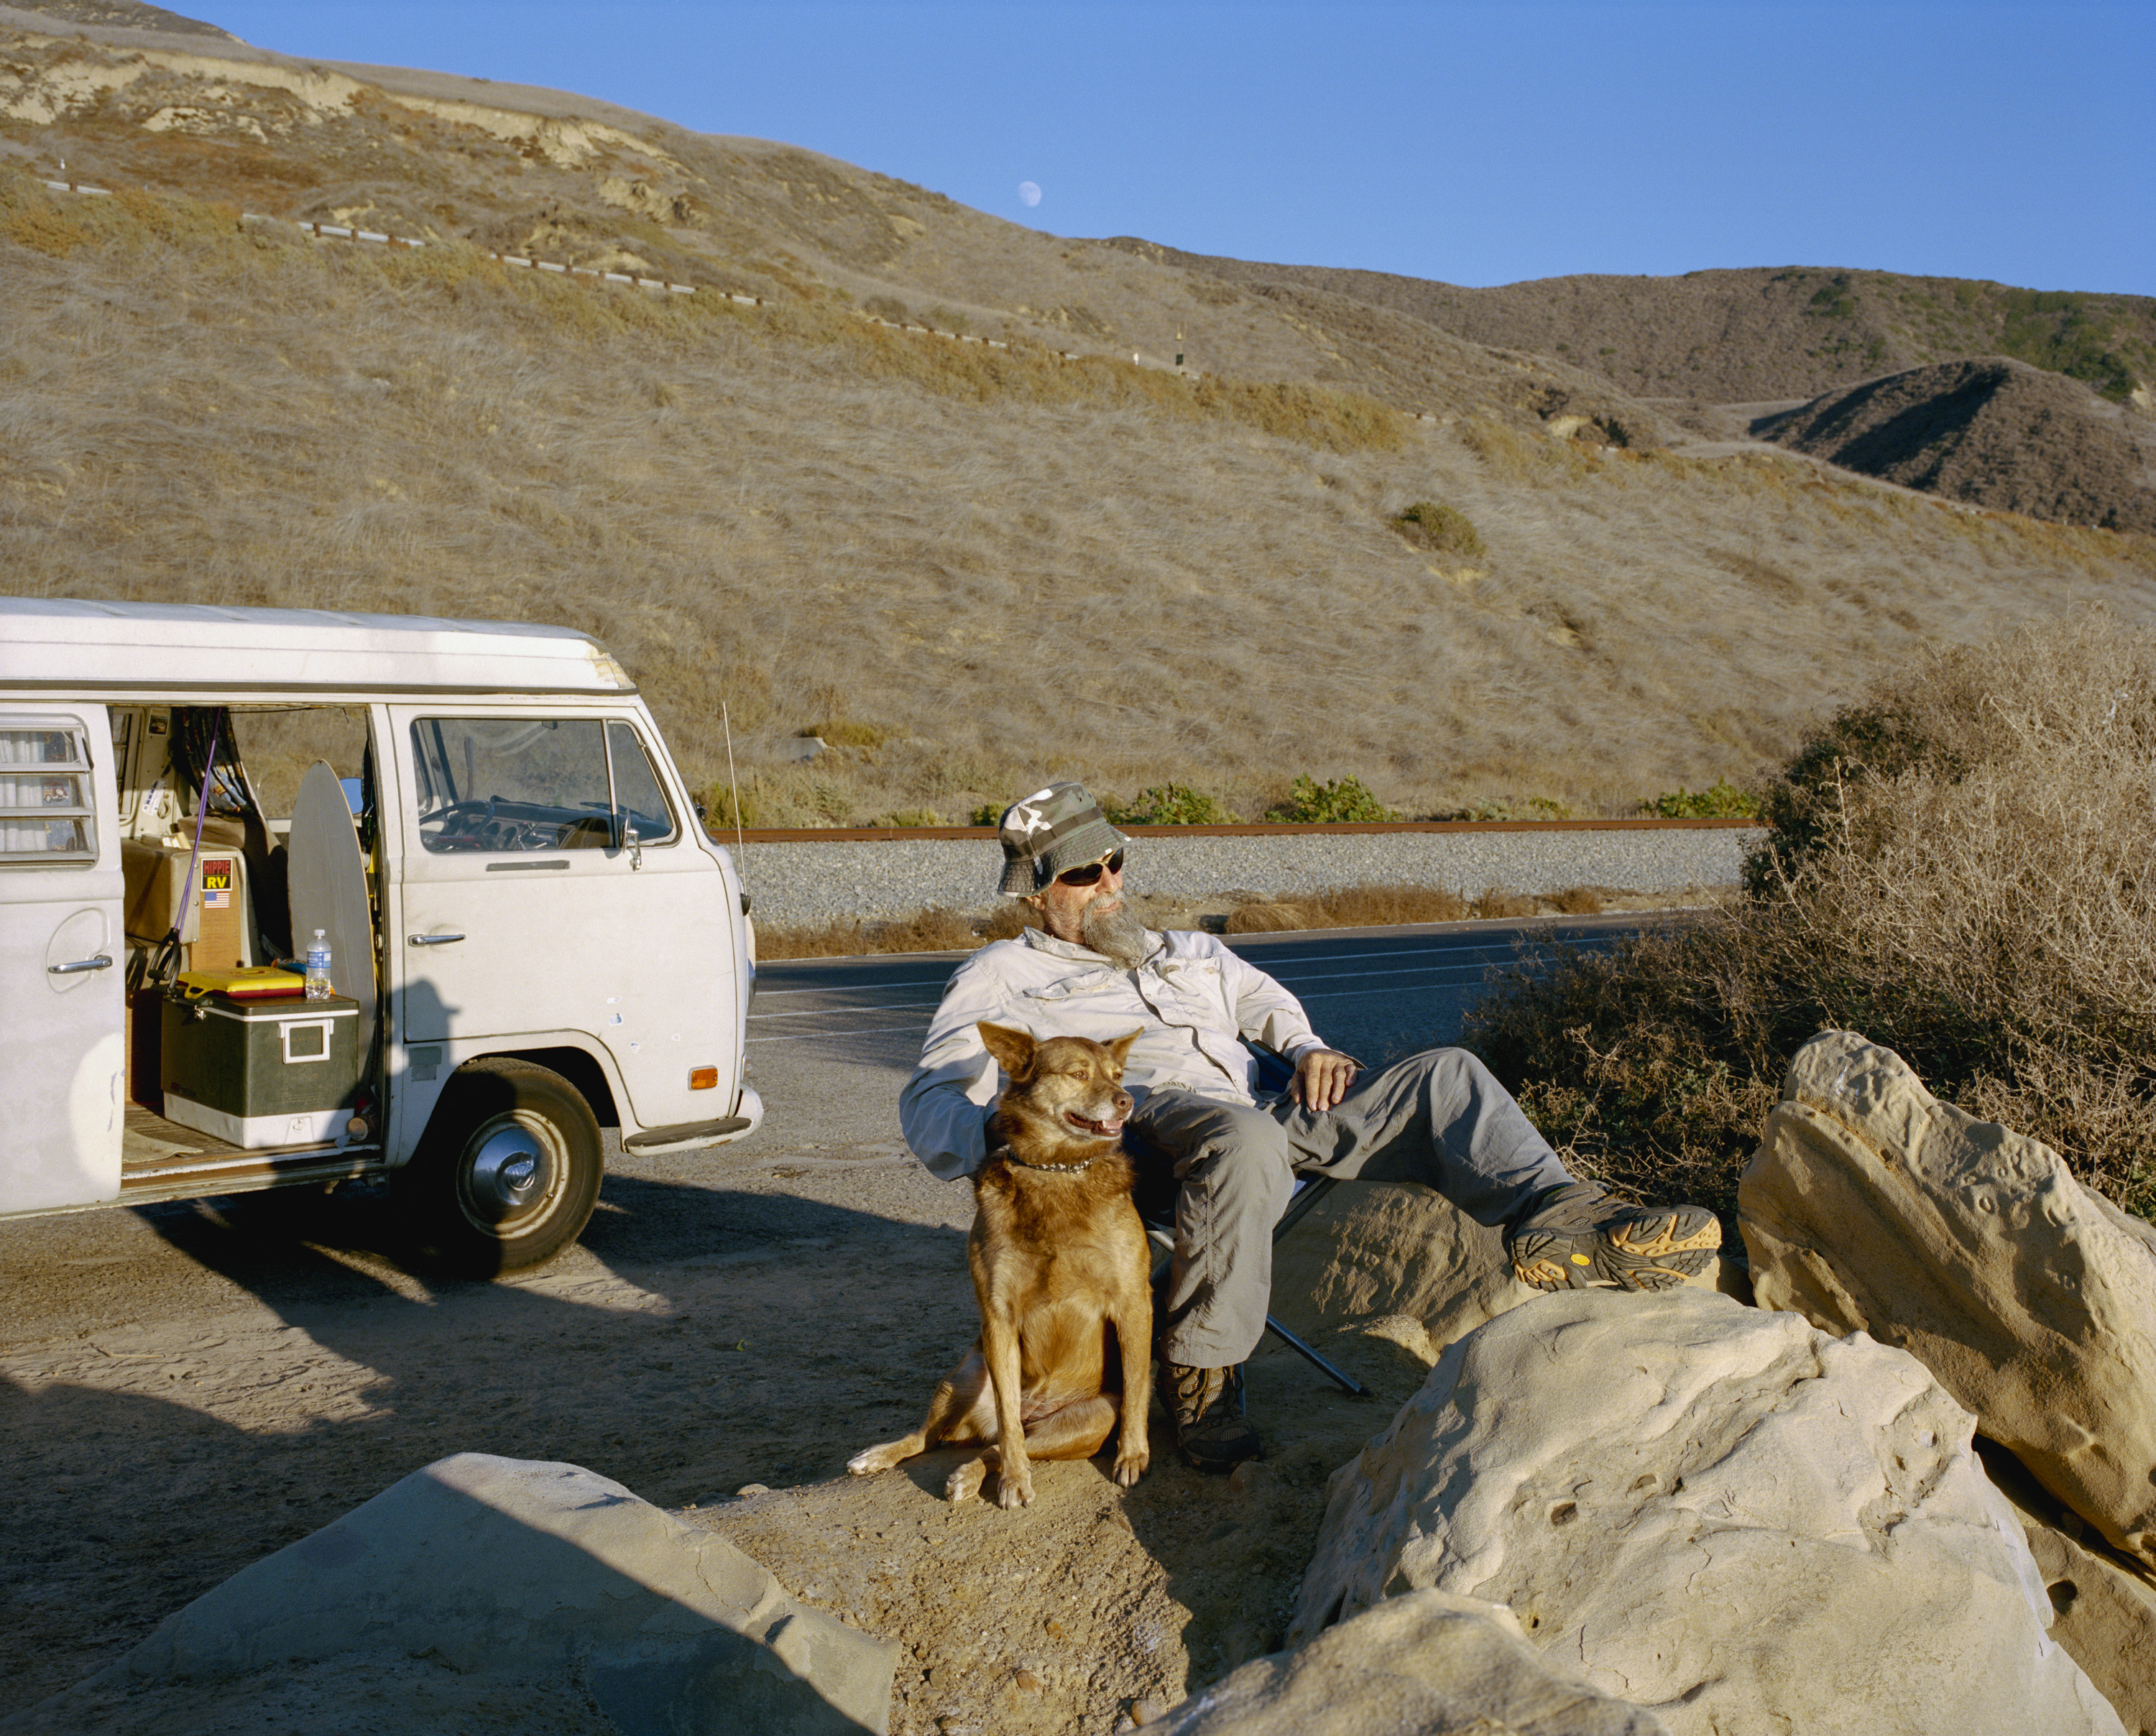 Anthony Sele with Lois, highway 1, California